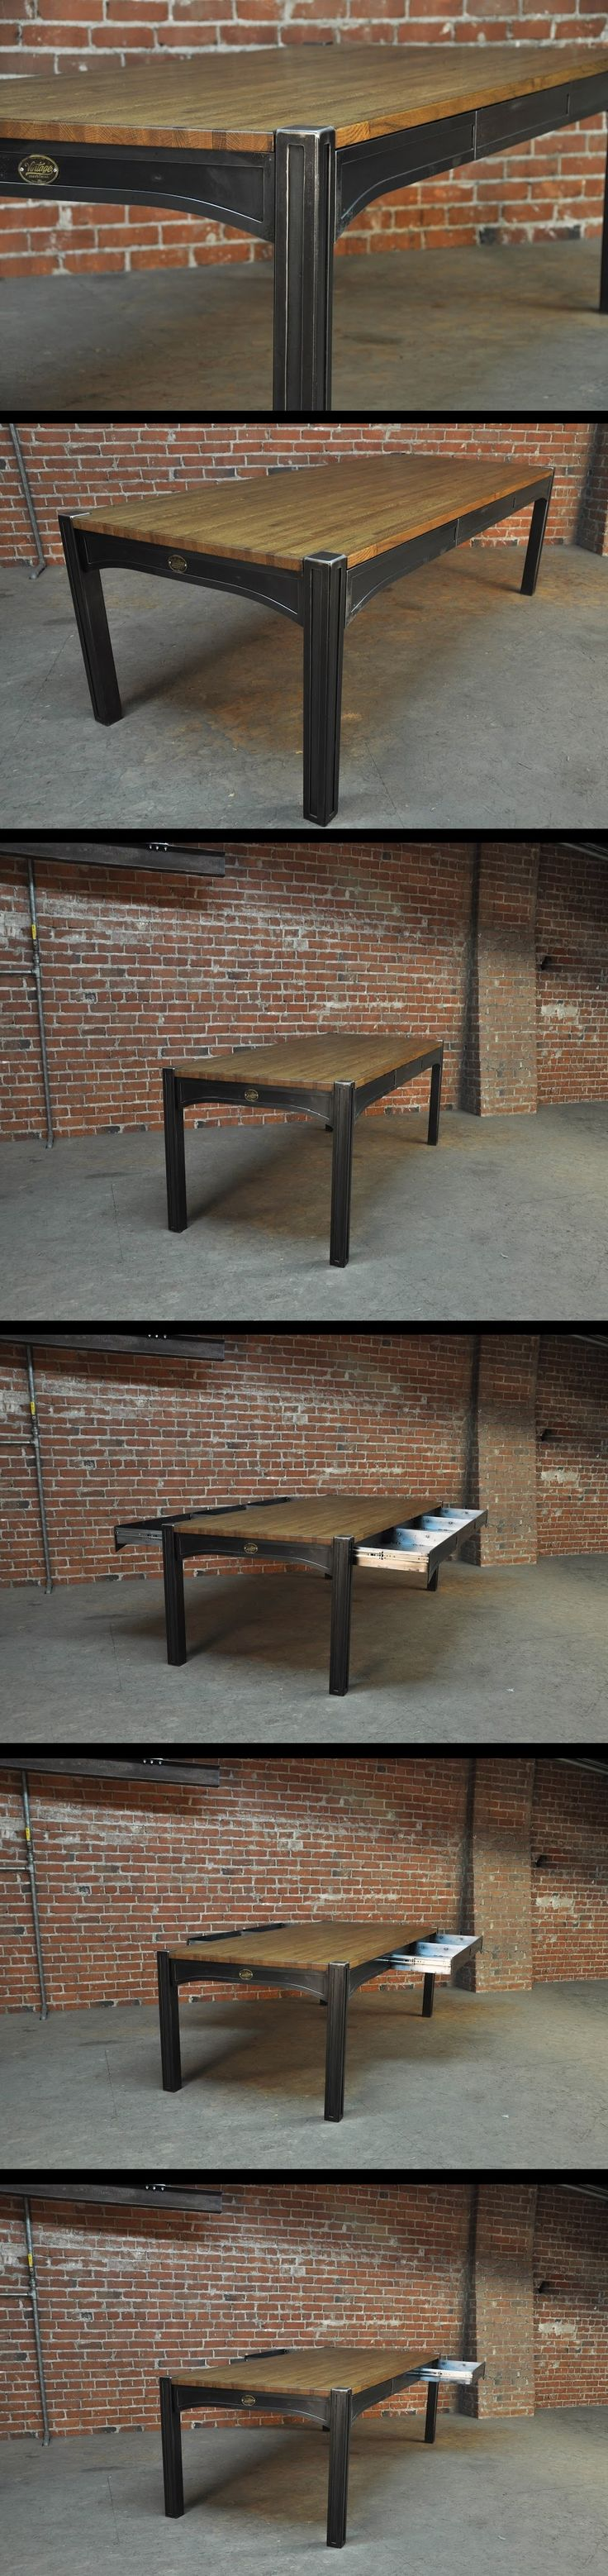 making industrial furniture. 42 dining table by vintage industrial furniture in phoenix az making